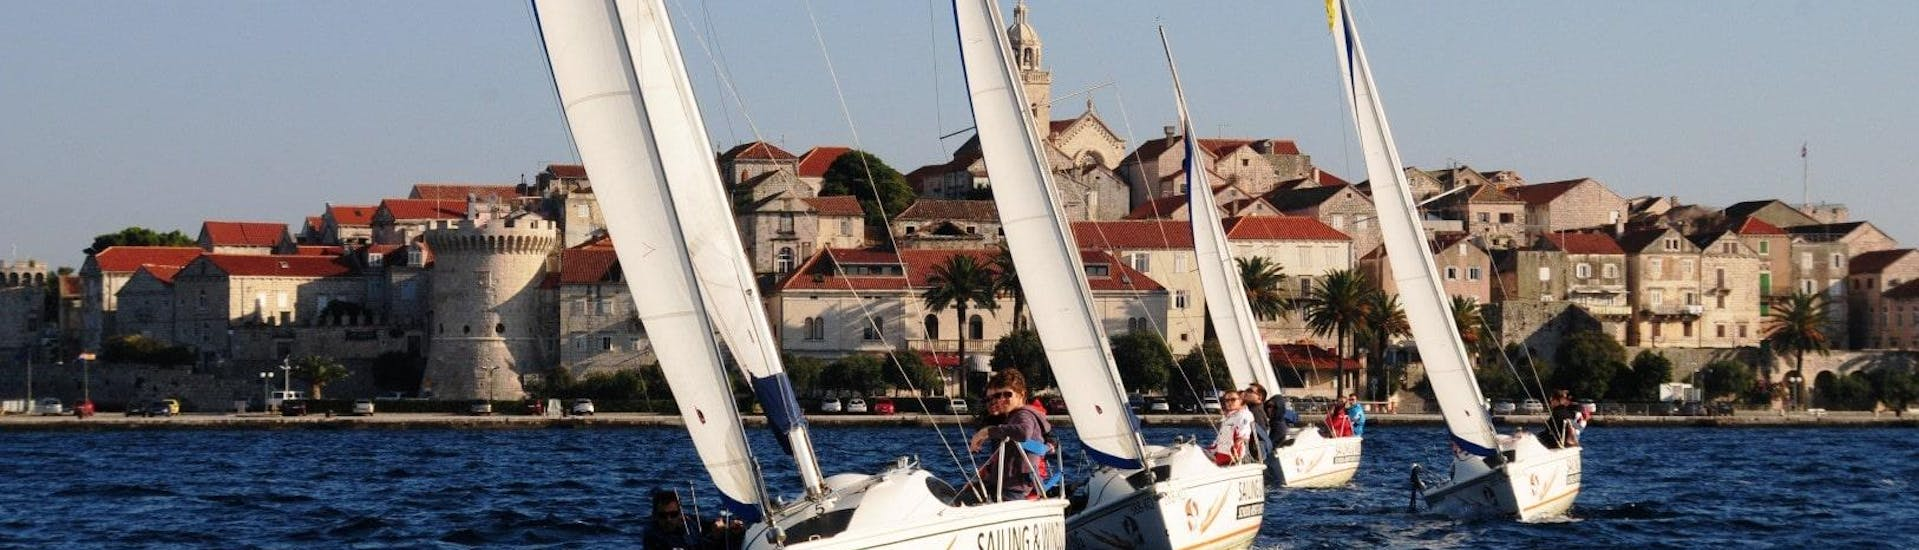 Half-day Sailing Keelboat Trip from Korčula with Swimming